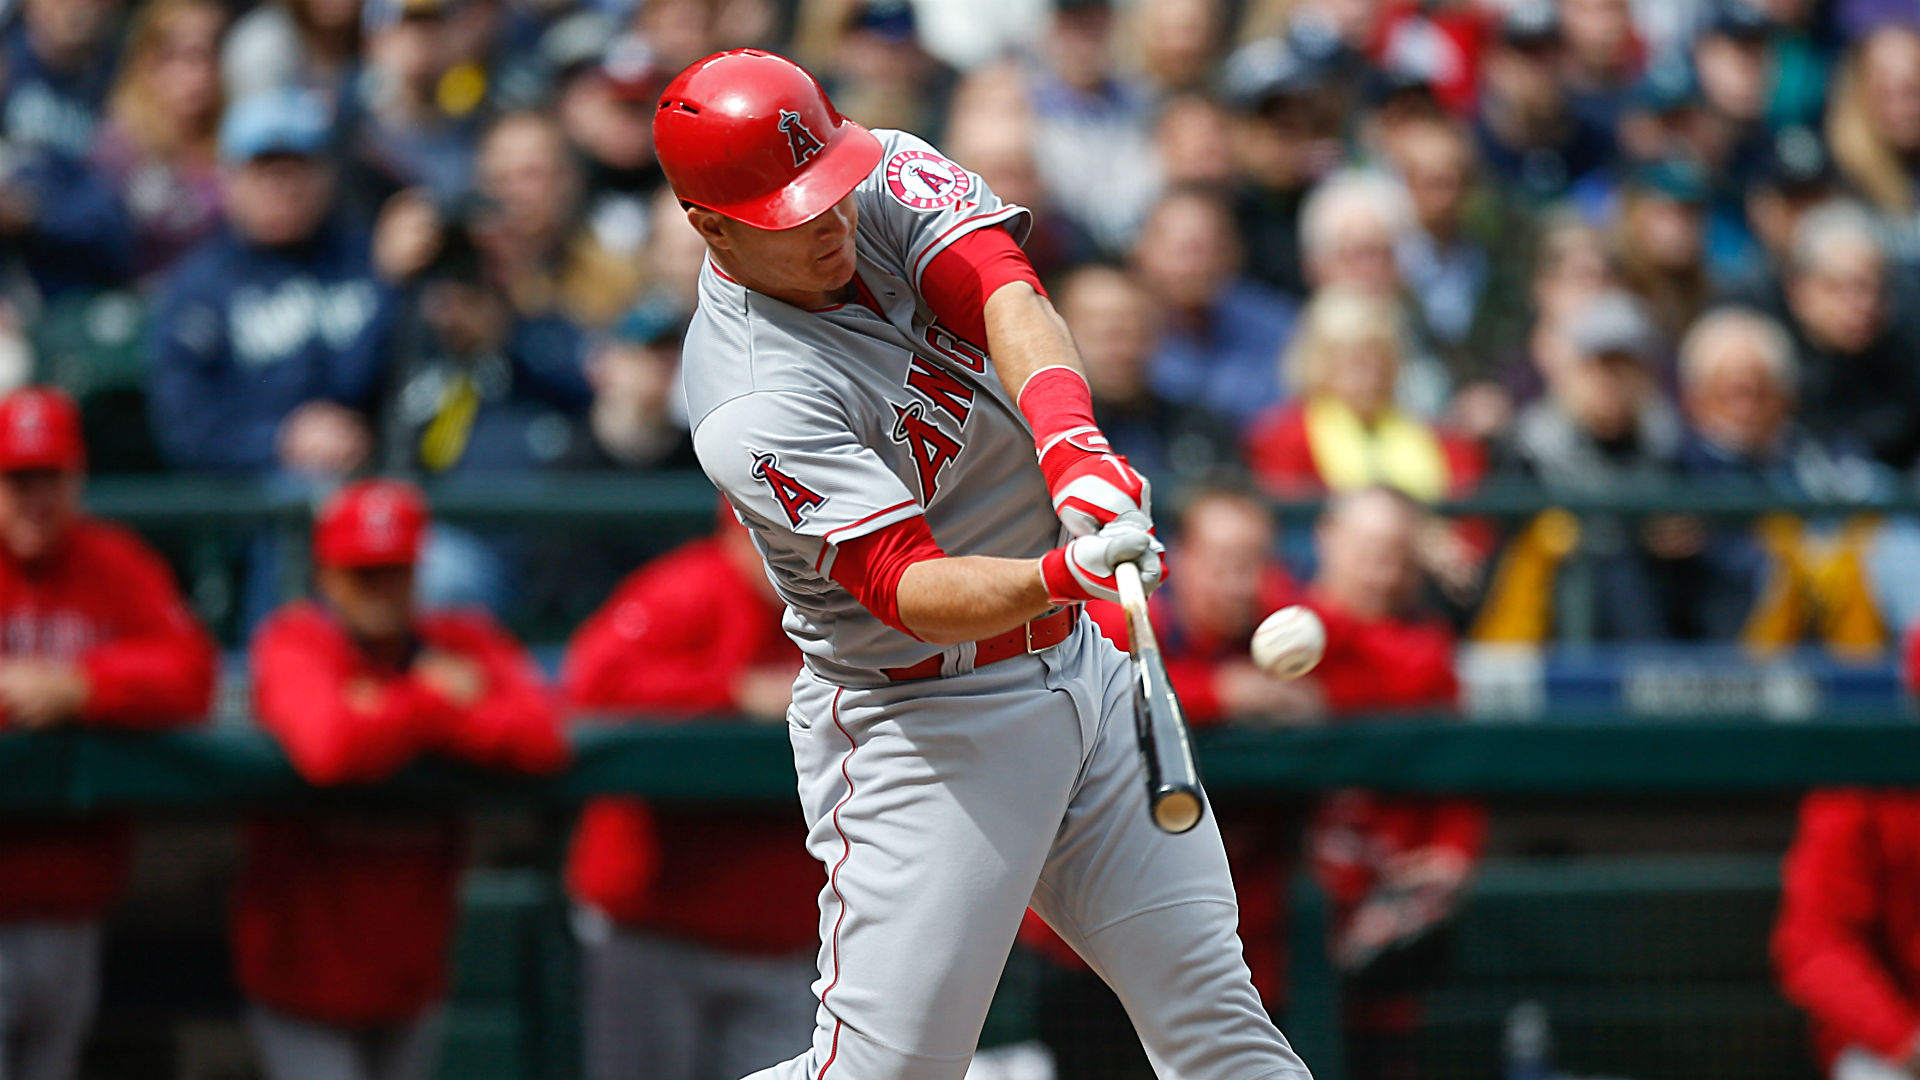 Mike Trout becomes youngest player with 100 homers and 100 steals